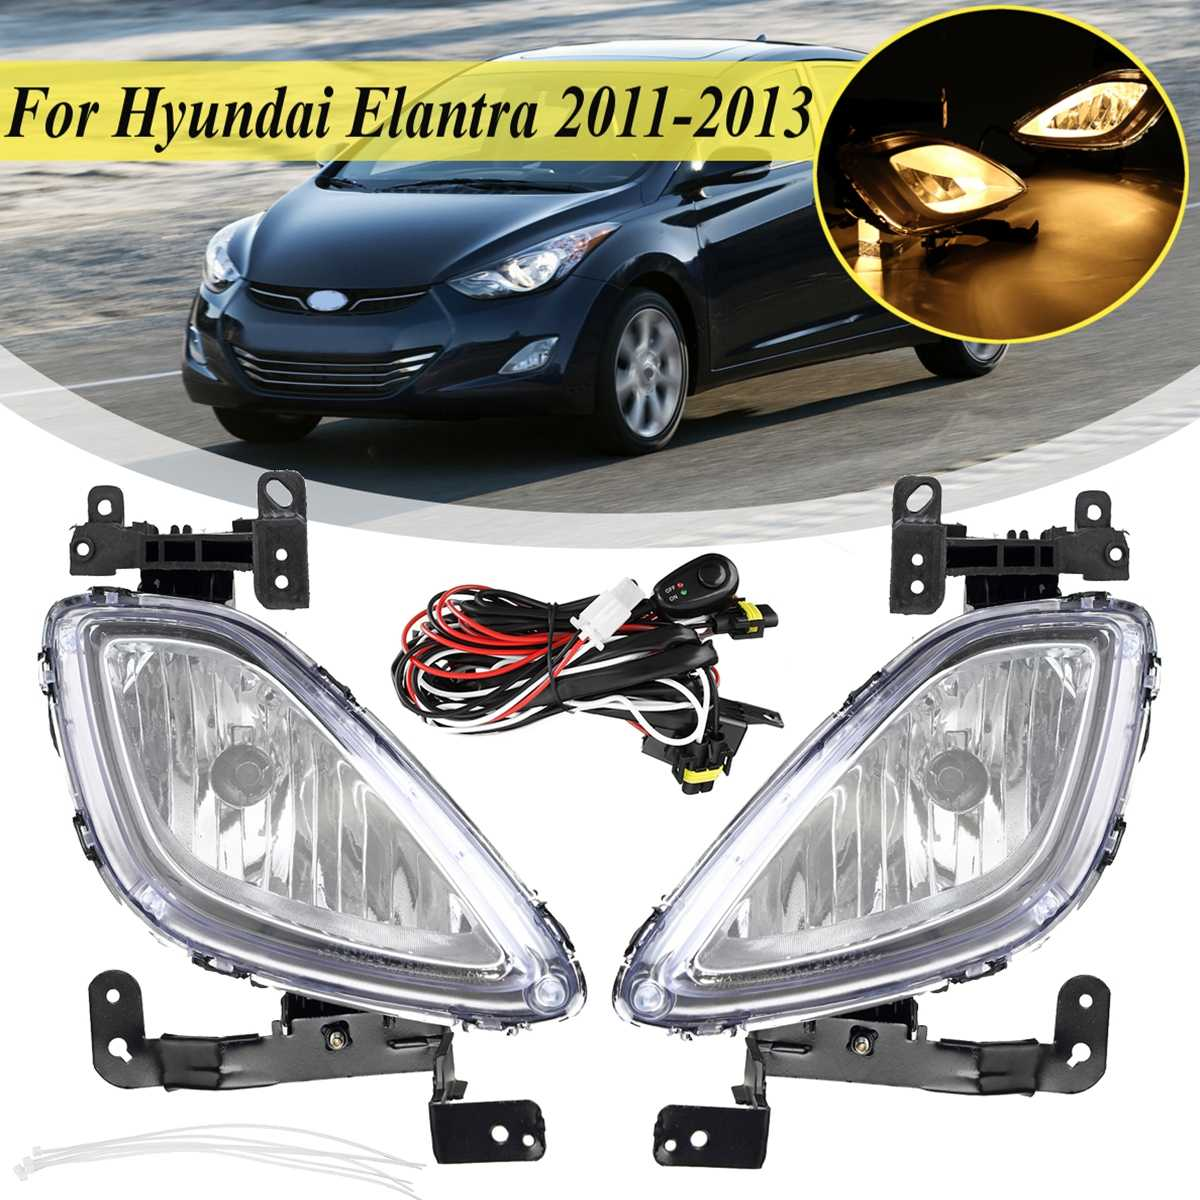 for Original 1 Pair Car Front Fog Light For Hyundai Elantra 2011 2012 2013 Lamp With Wire Bulb  Driving Drl Light Replacementfor Original 1 Pair Car Front Fog Light For Hyundai Elantra 2011 2012 2013 Lamp With Wire Bulb  Driving Drl Light Replacement